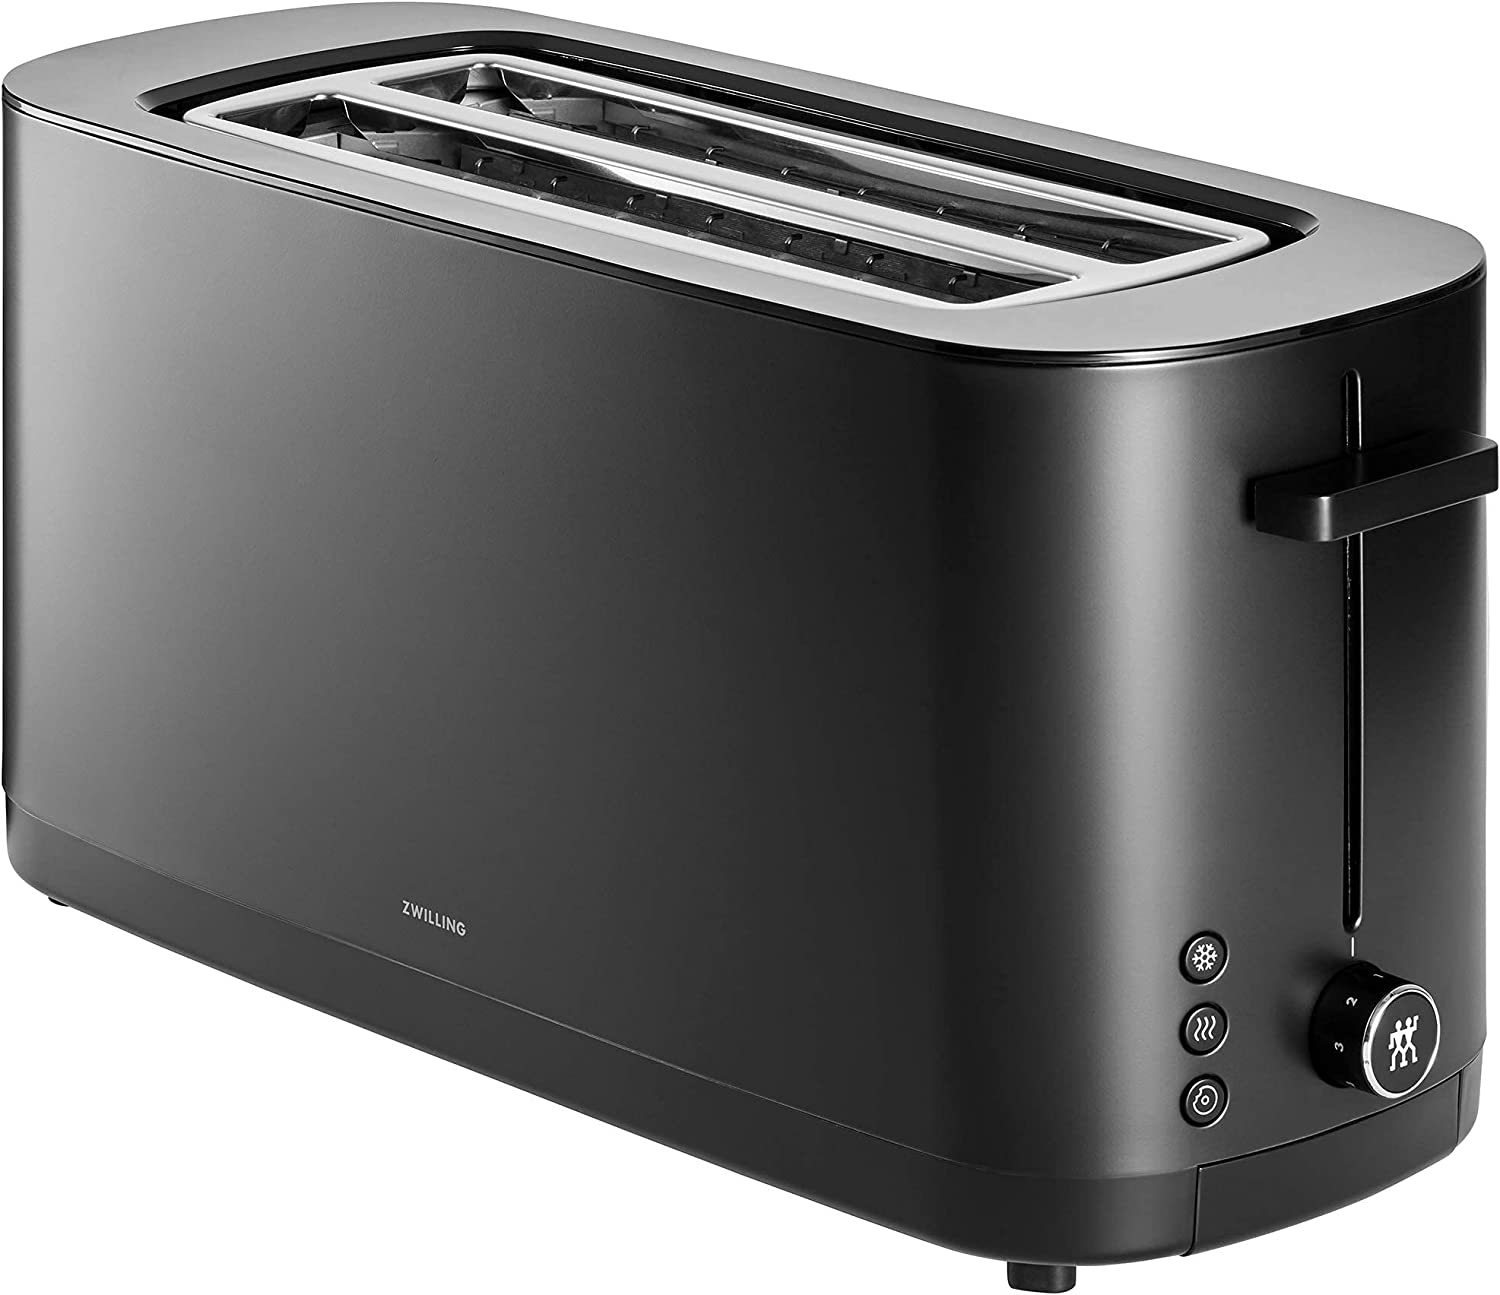 Zwilling Enfinigy Cool Touch 2 Long Slot Toaster, 4 Slices with Extra Wide 1.5